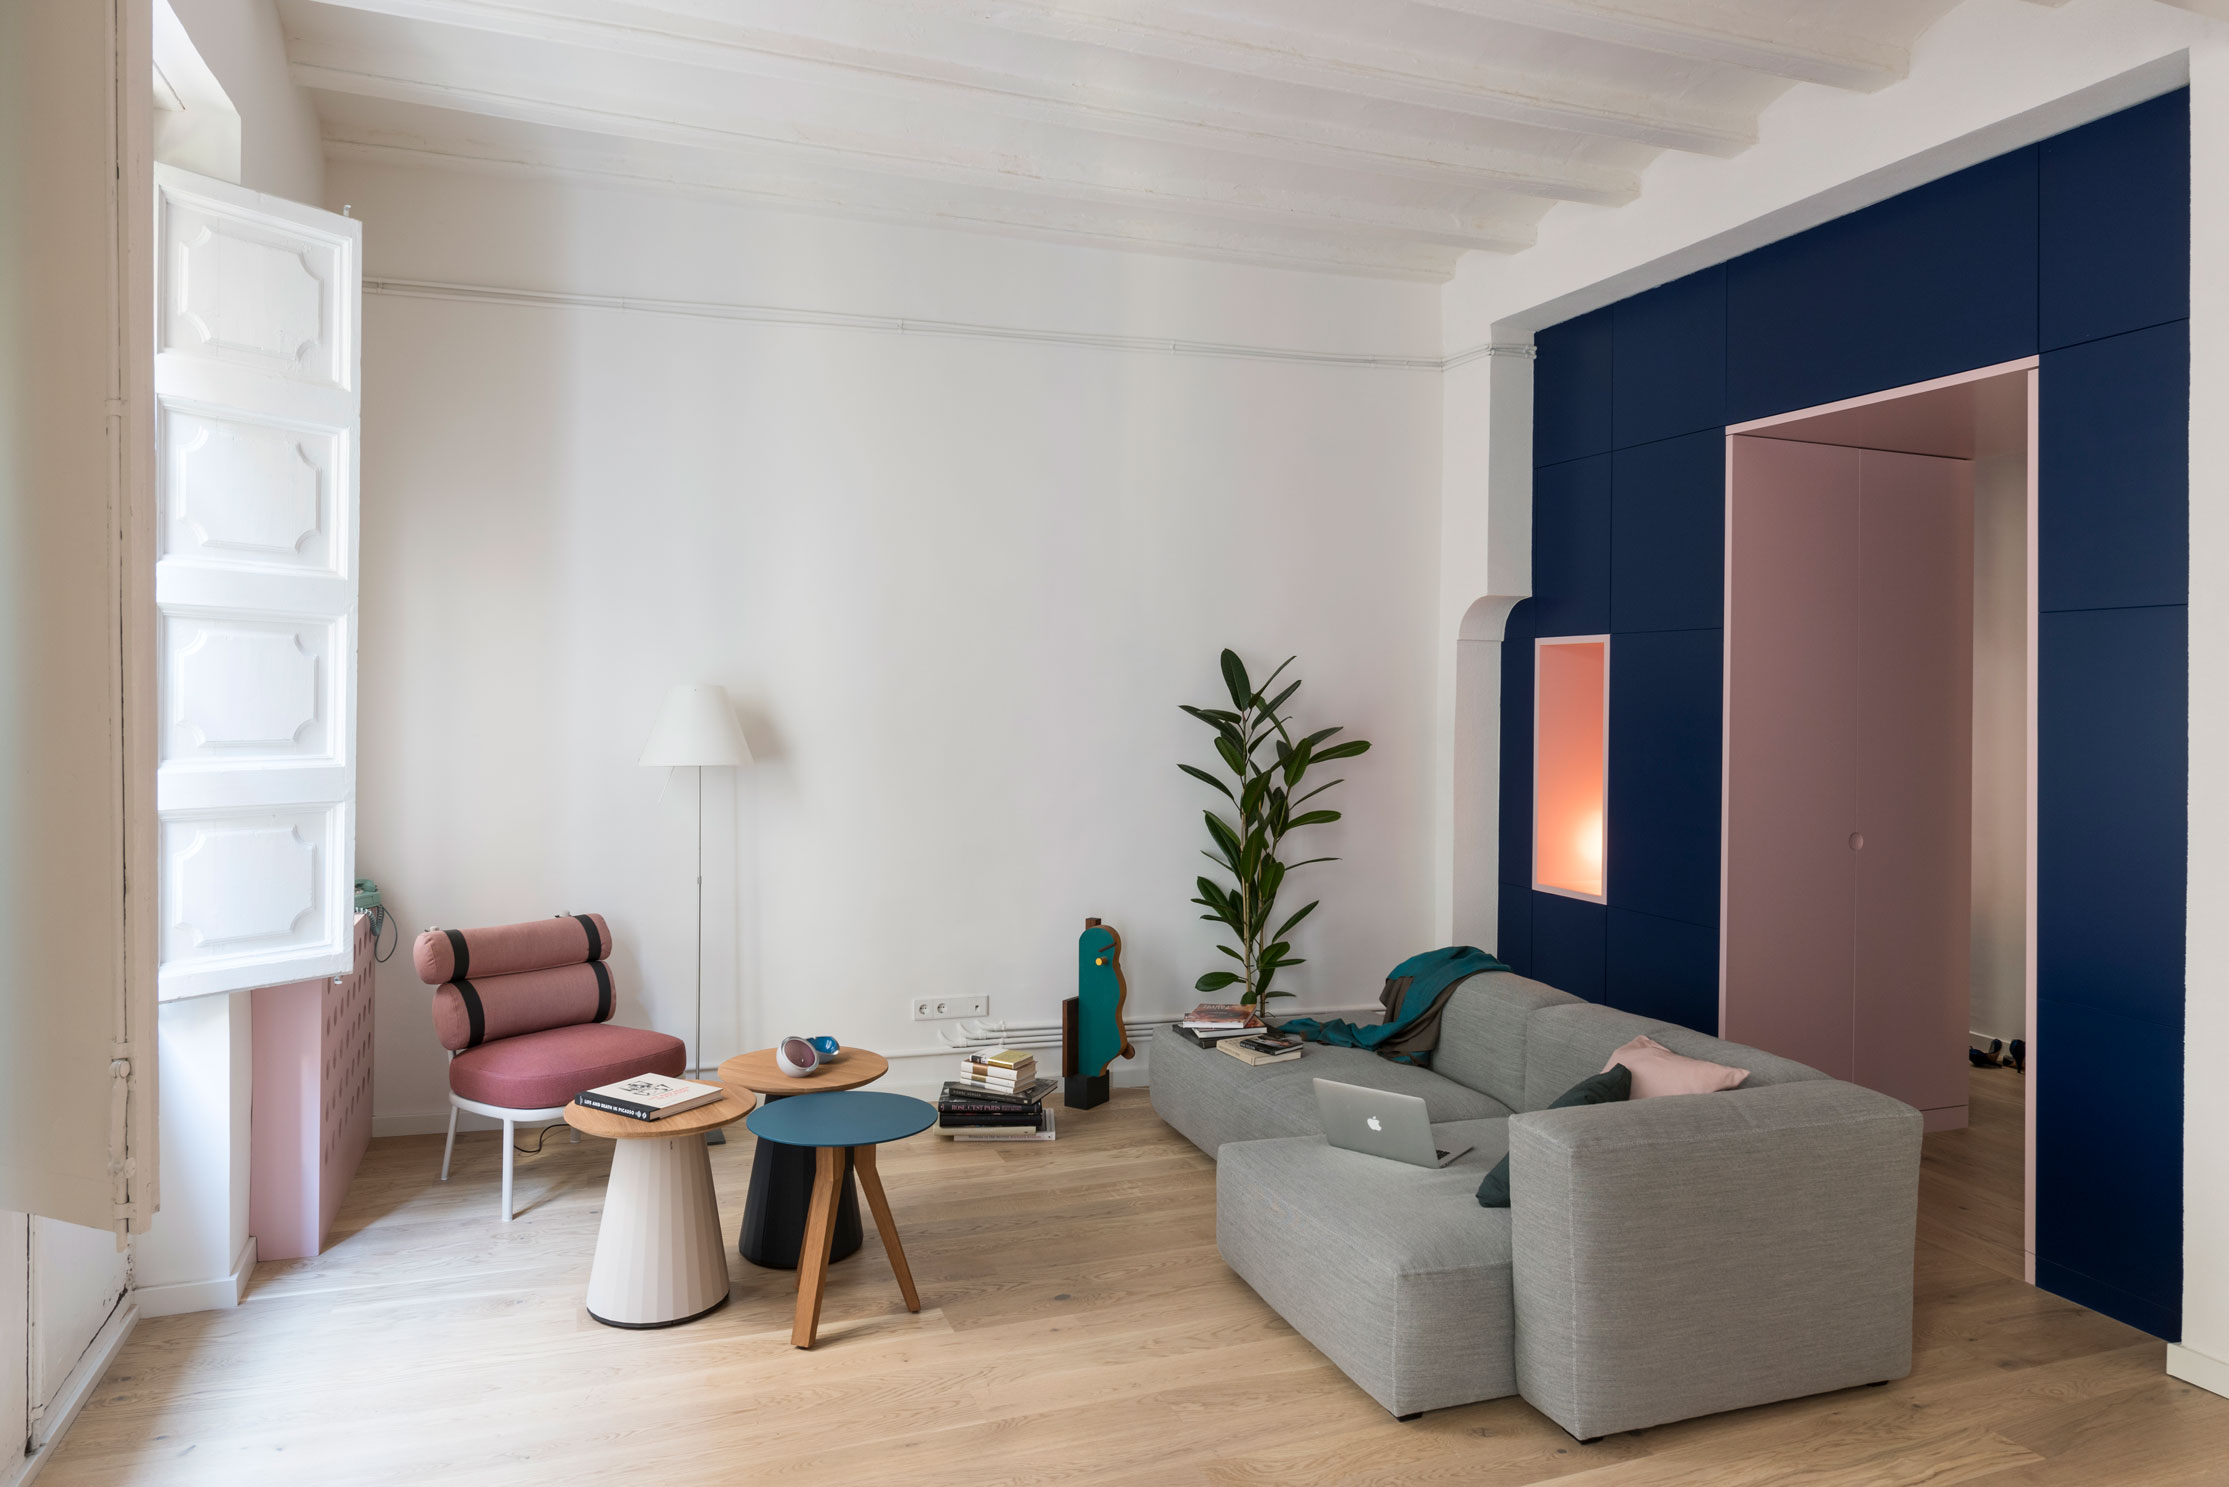 The living area is fitted with carefully chosen furniture: a Mags sofa by HAY, accompanied by a Roll Club Chair by Kettal; of the same brand are the side tables Cala and Vieques. A classic Costanza lamp by Luceplan and a wooden sculpture by OWL complete the sitting room.